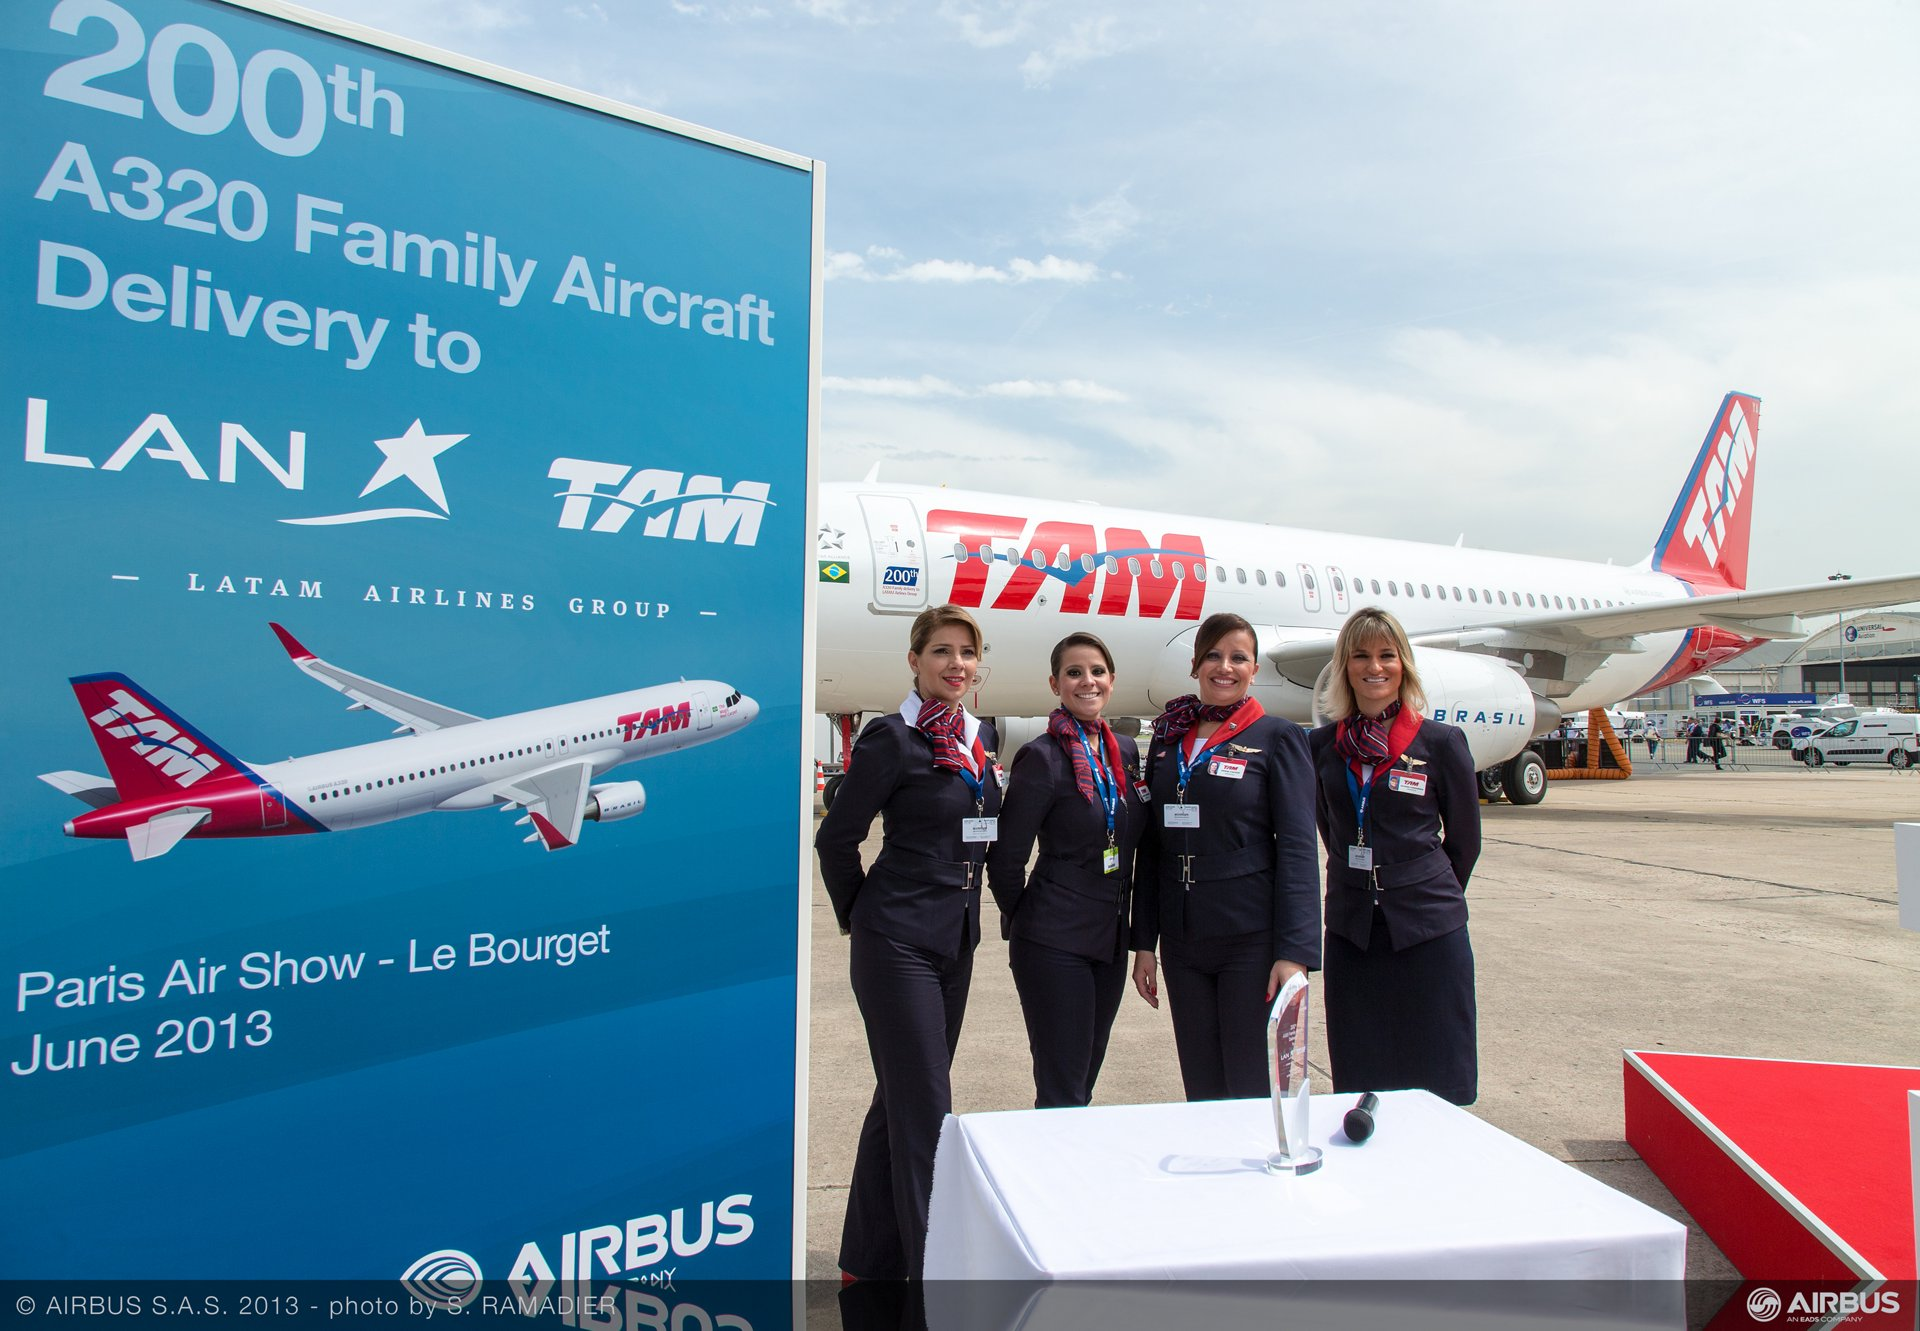 A320 LATAM 200th delivery ceremony 2